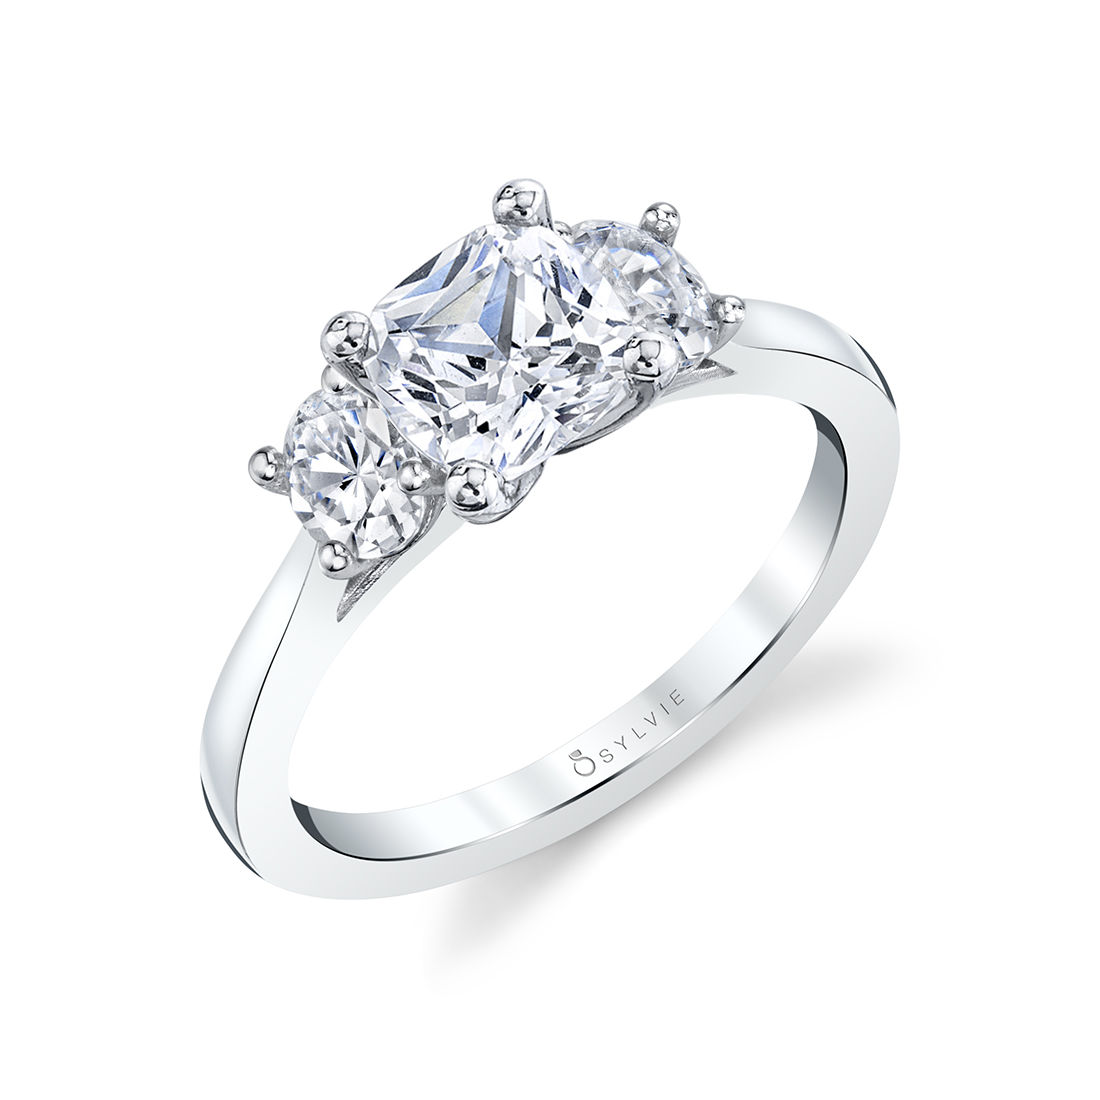 cushion cut 3 stone engagement ring in white gold